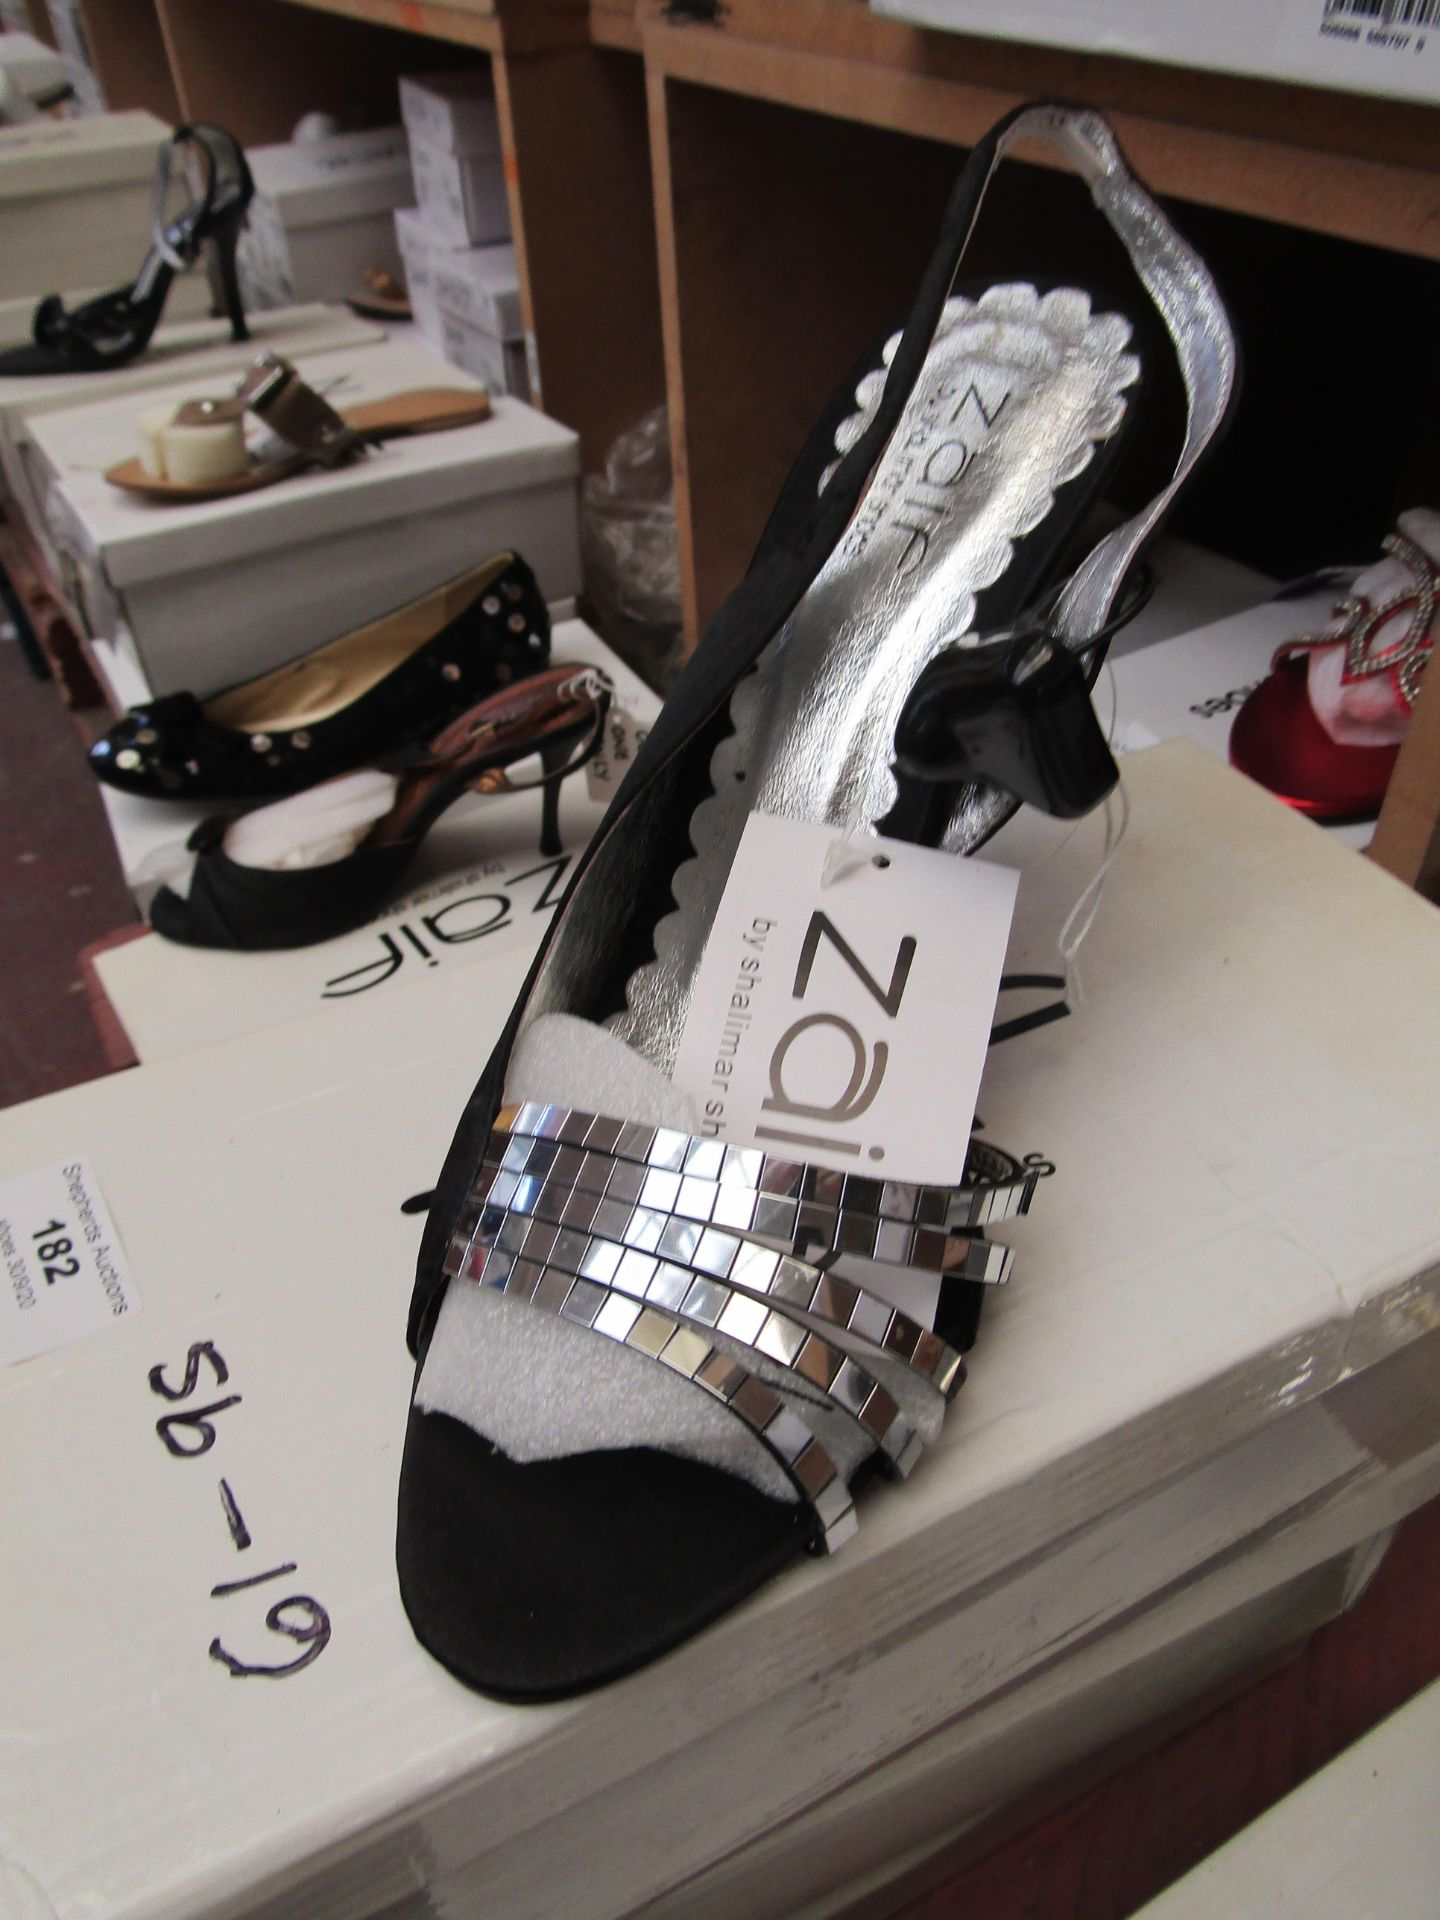 Zaif by Shalamar Shoes Ladies Black & Embellished Shoes size 6 new & boxed see image for design